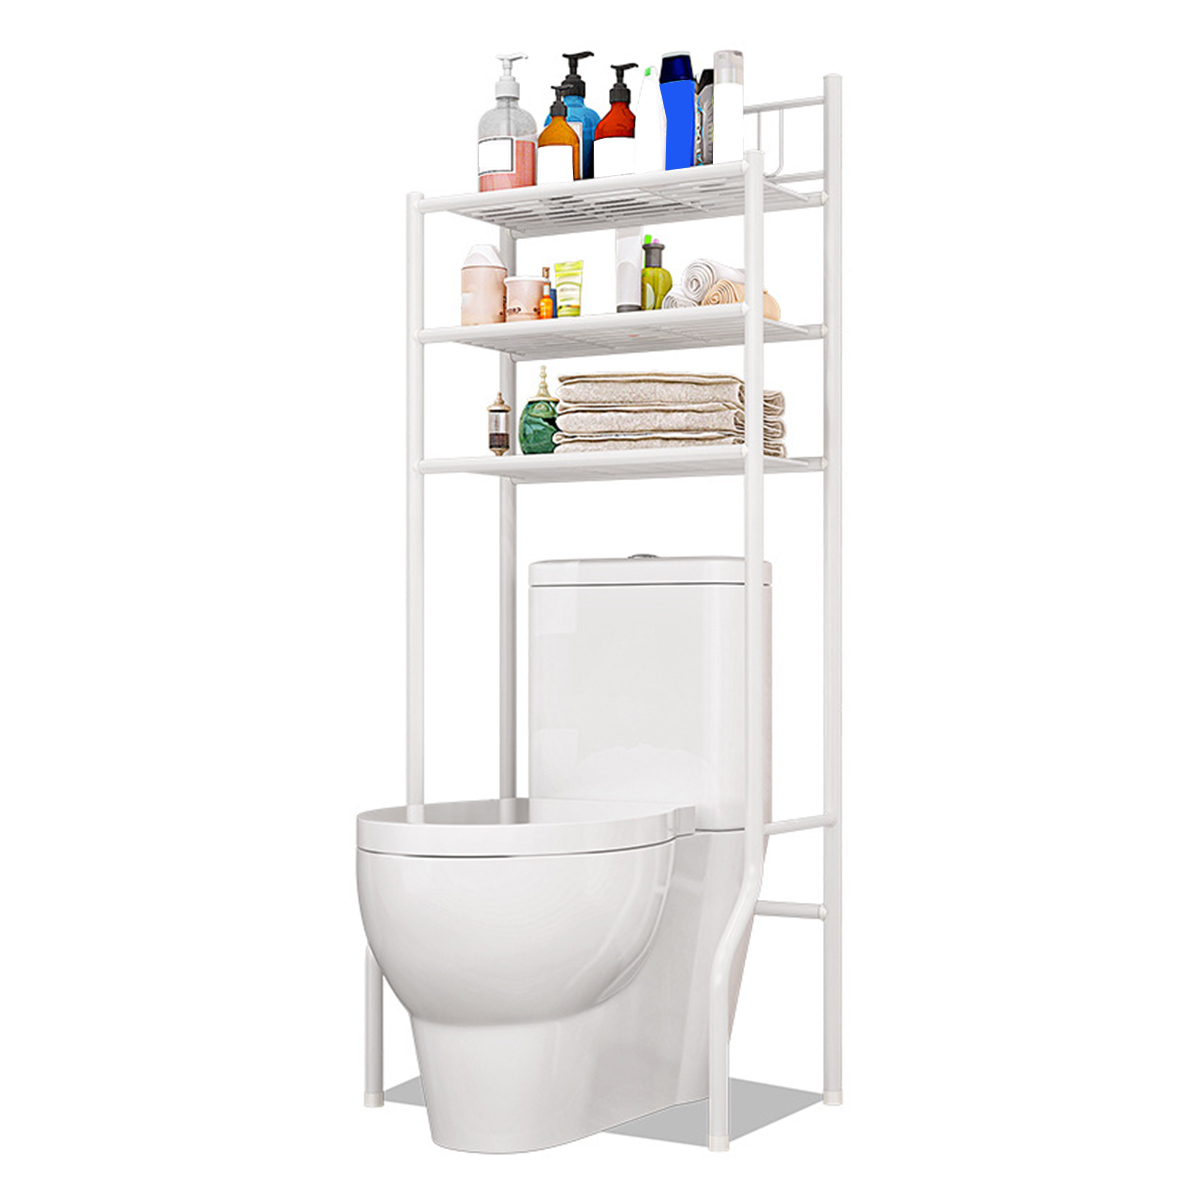 3 Floors The Toilet Storage Rack Bathroom Organizer Shelf With Towel Bars Simple Assembly Space Saver Organizer Holder Shelves